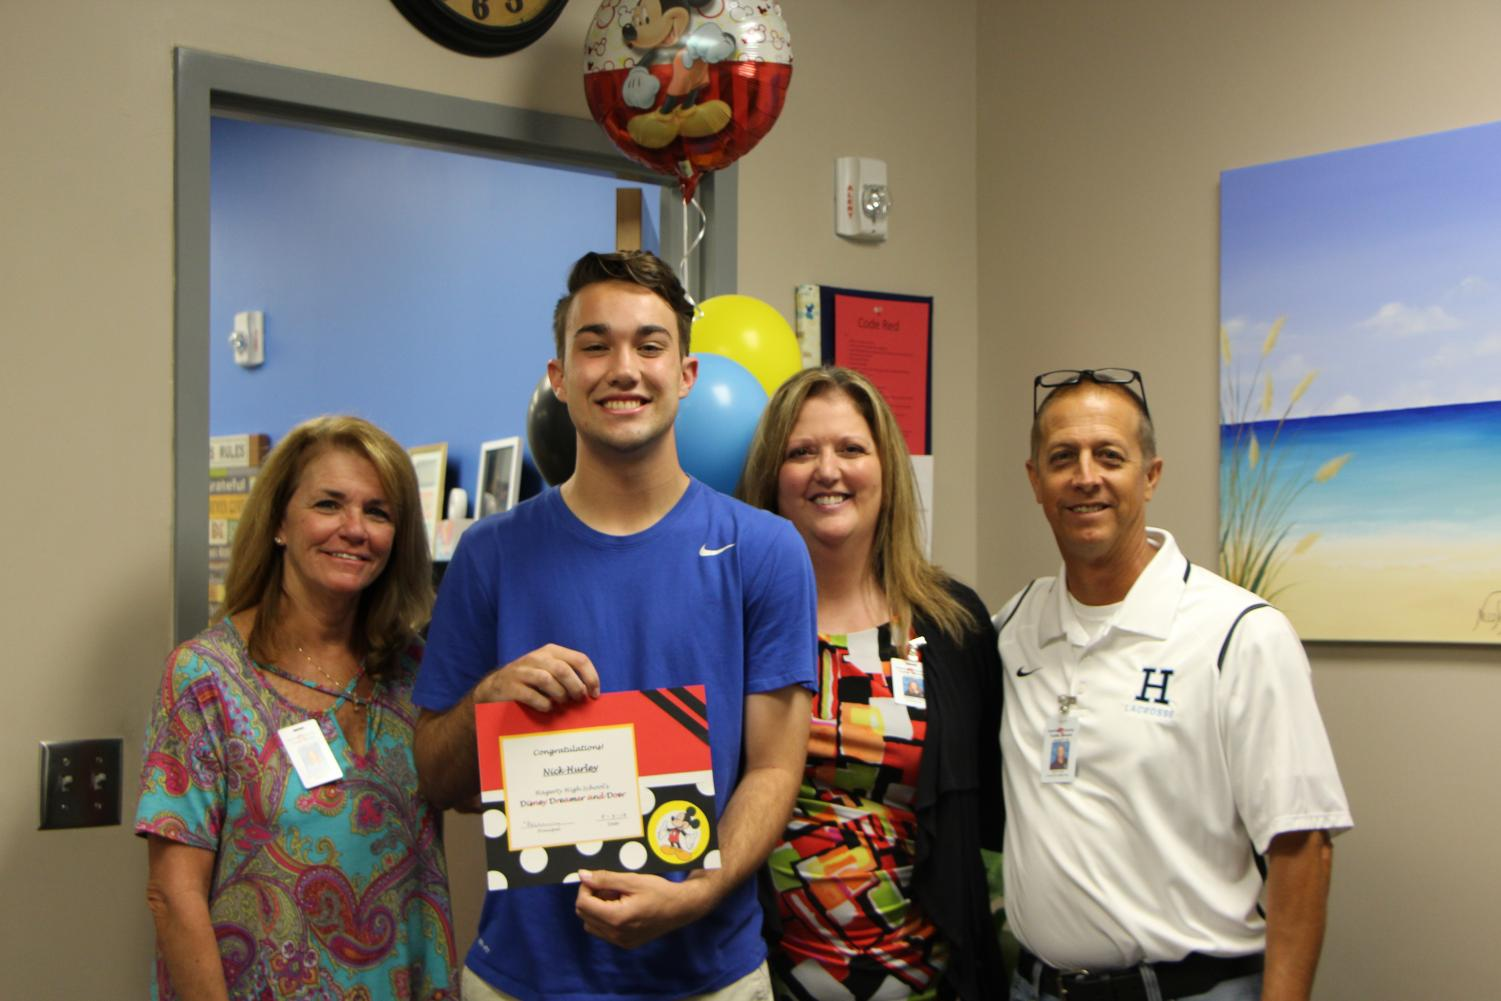 Senior Nick Hurley poses with Student Services and Administration. He won the Disney Dreamer and Doer award.